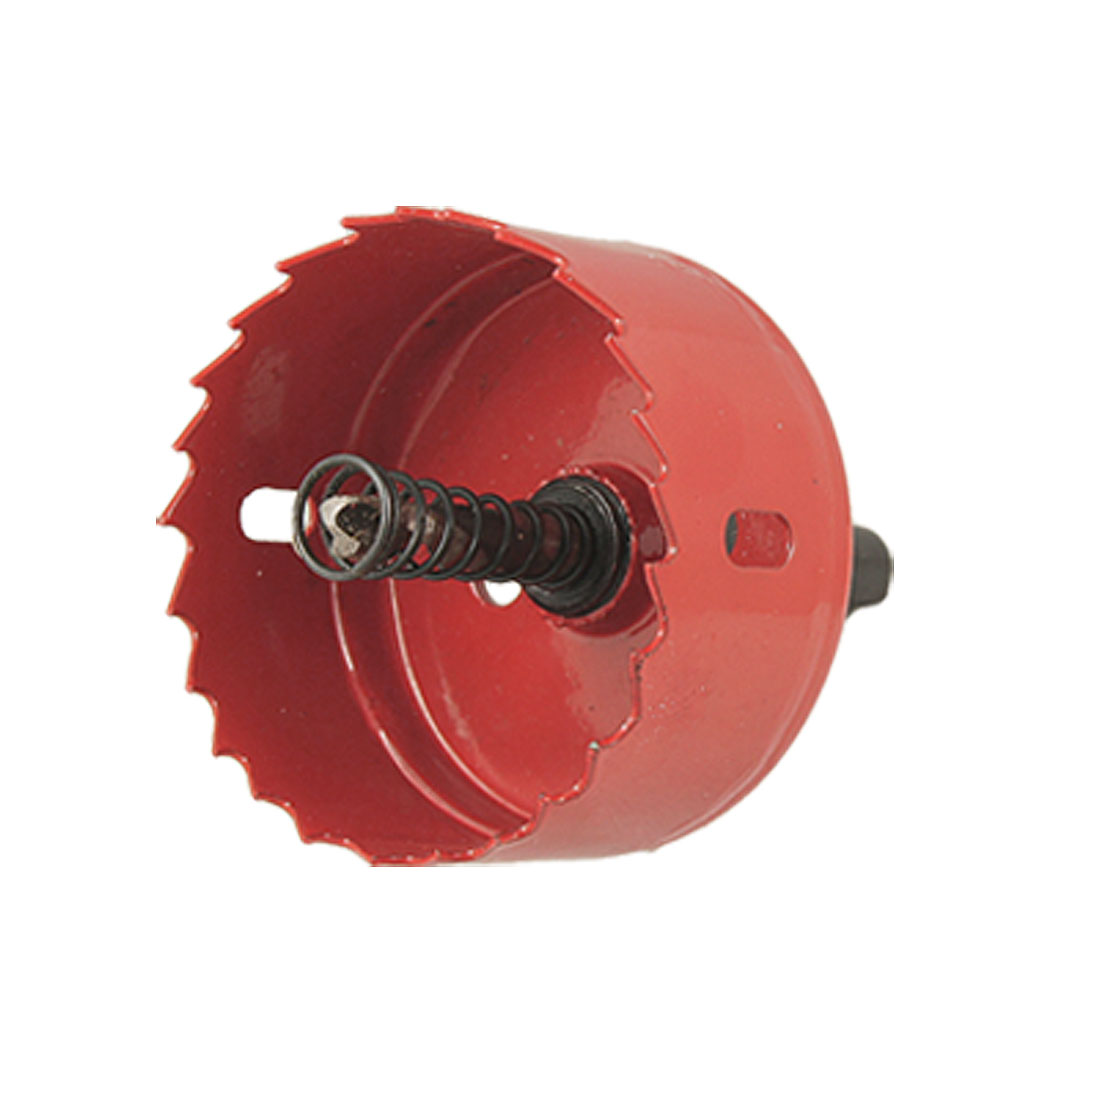 Aluminum Alloy Wood Cutting 60mm Diameter Hole Saw Tool